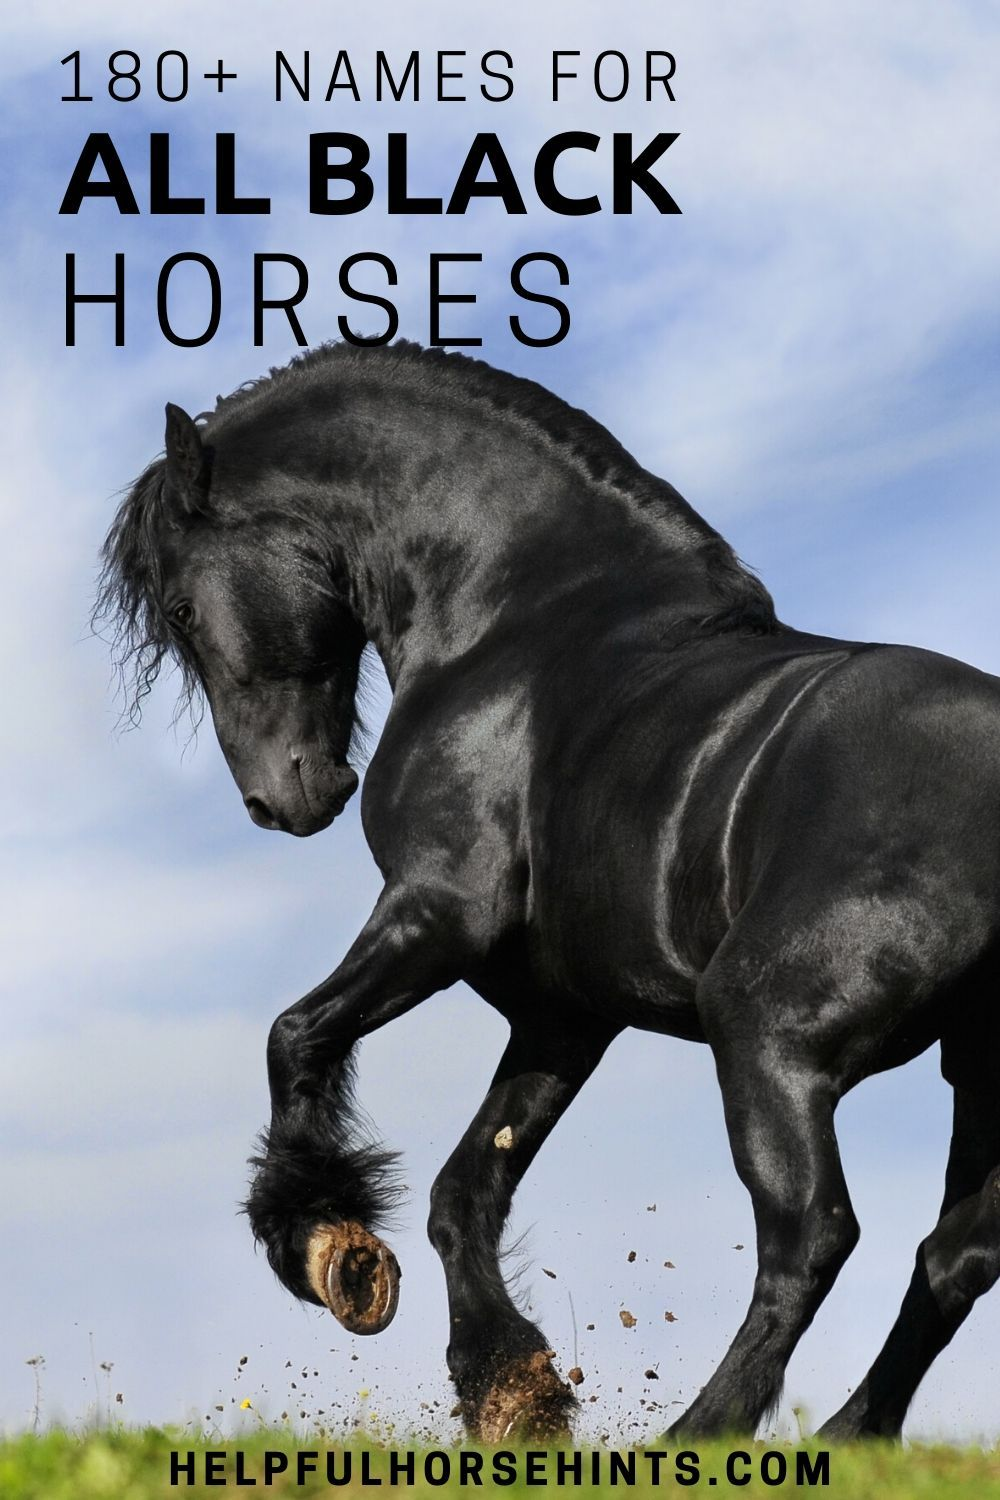 180+ Names for Black Horses in 2020 Black horses, Horses